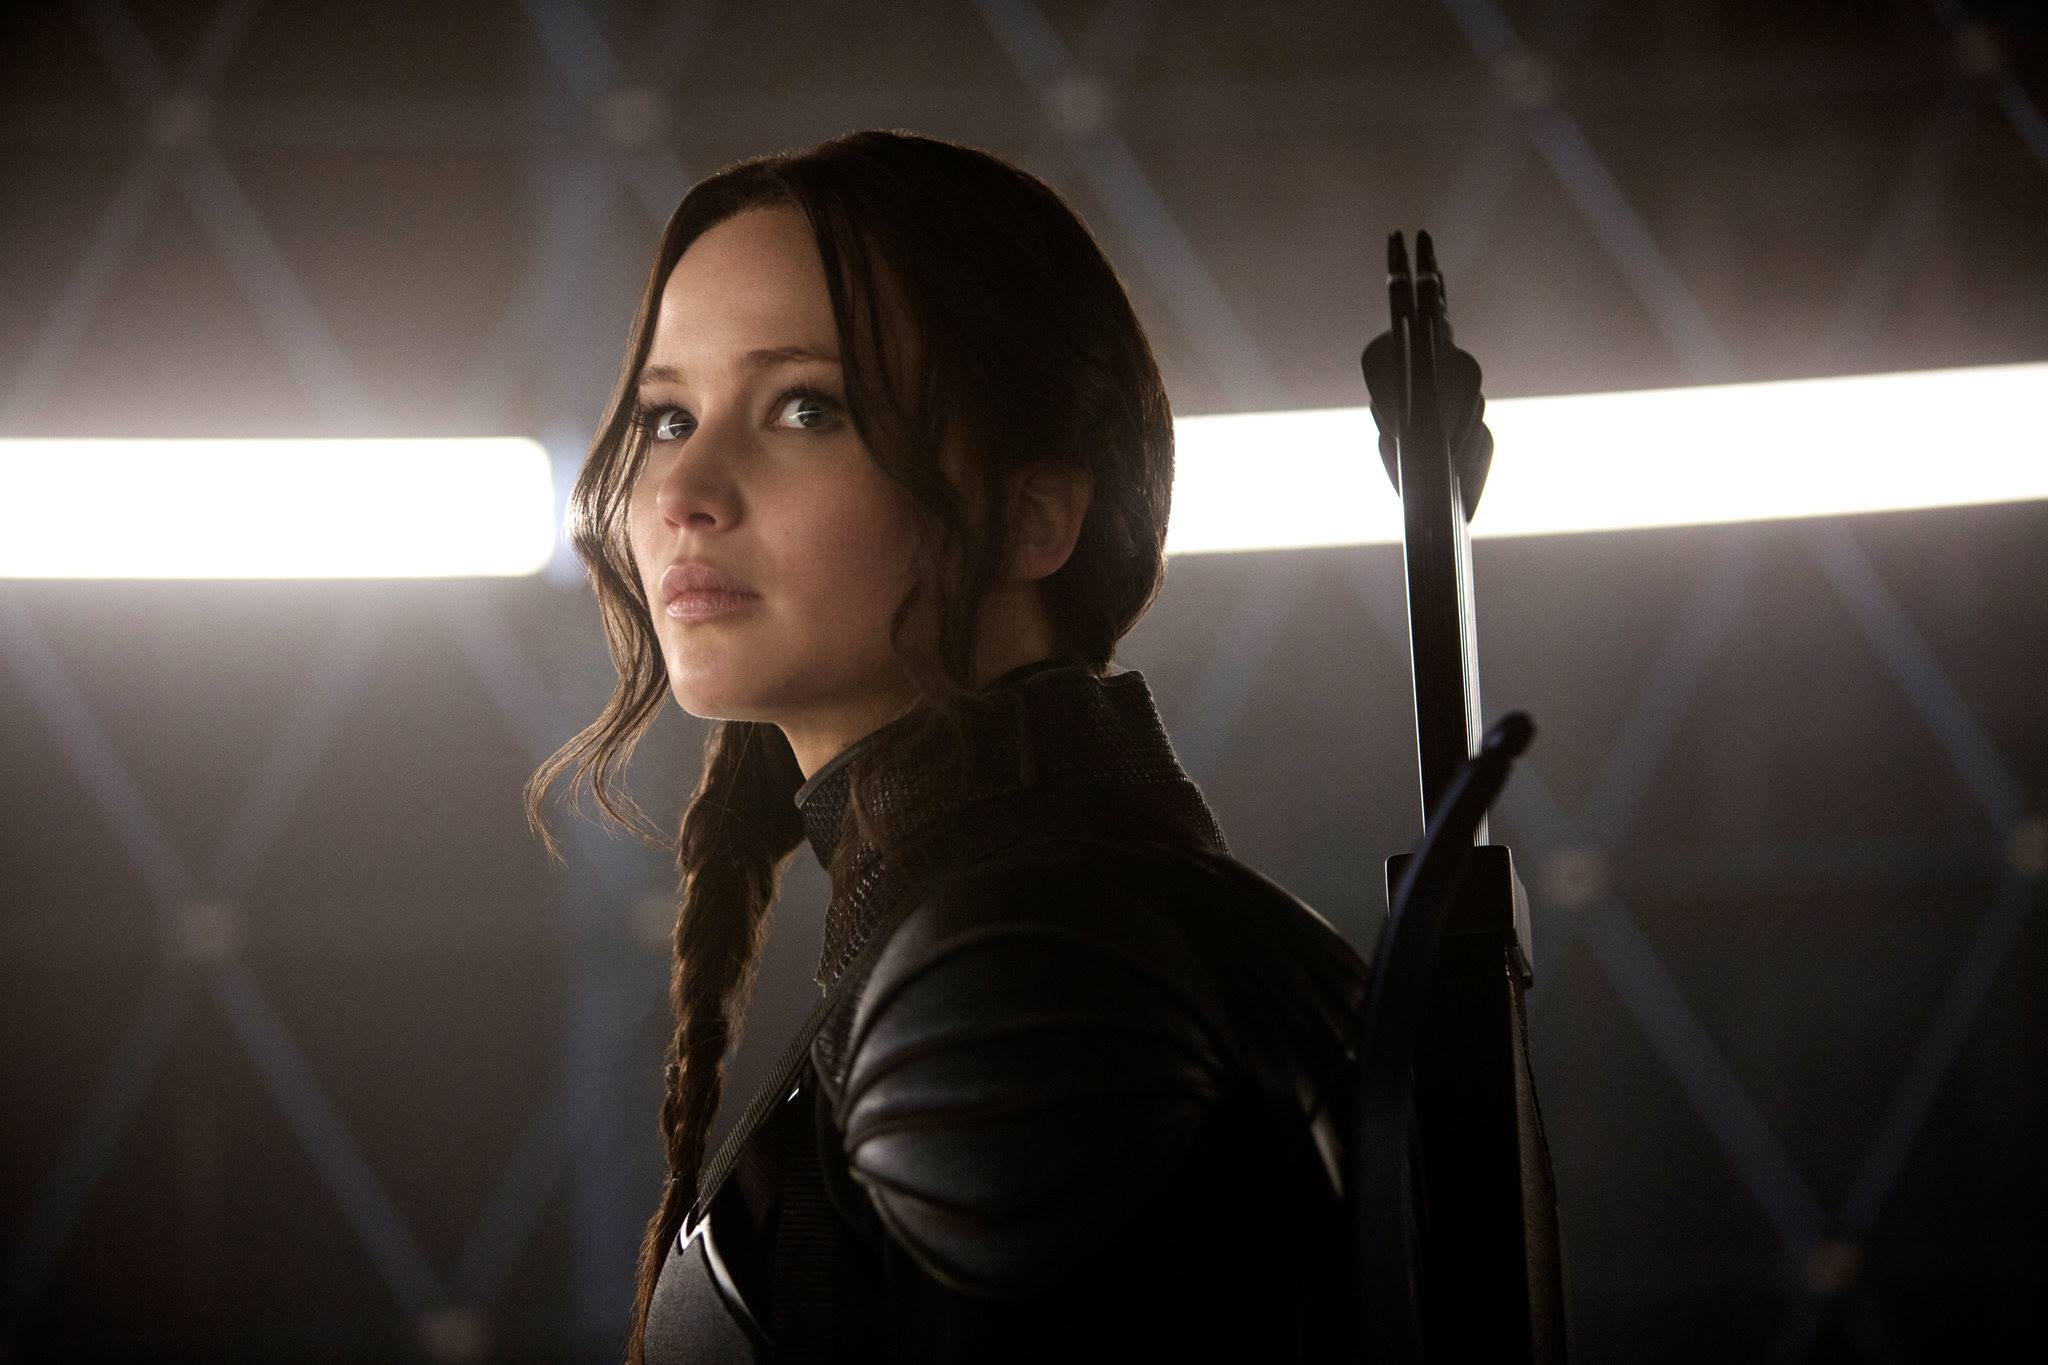 The Numerology of Katniss Everdeen